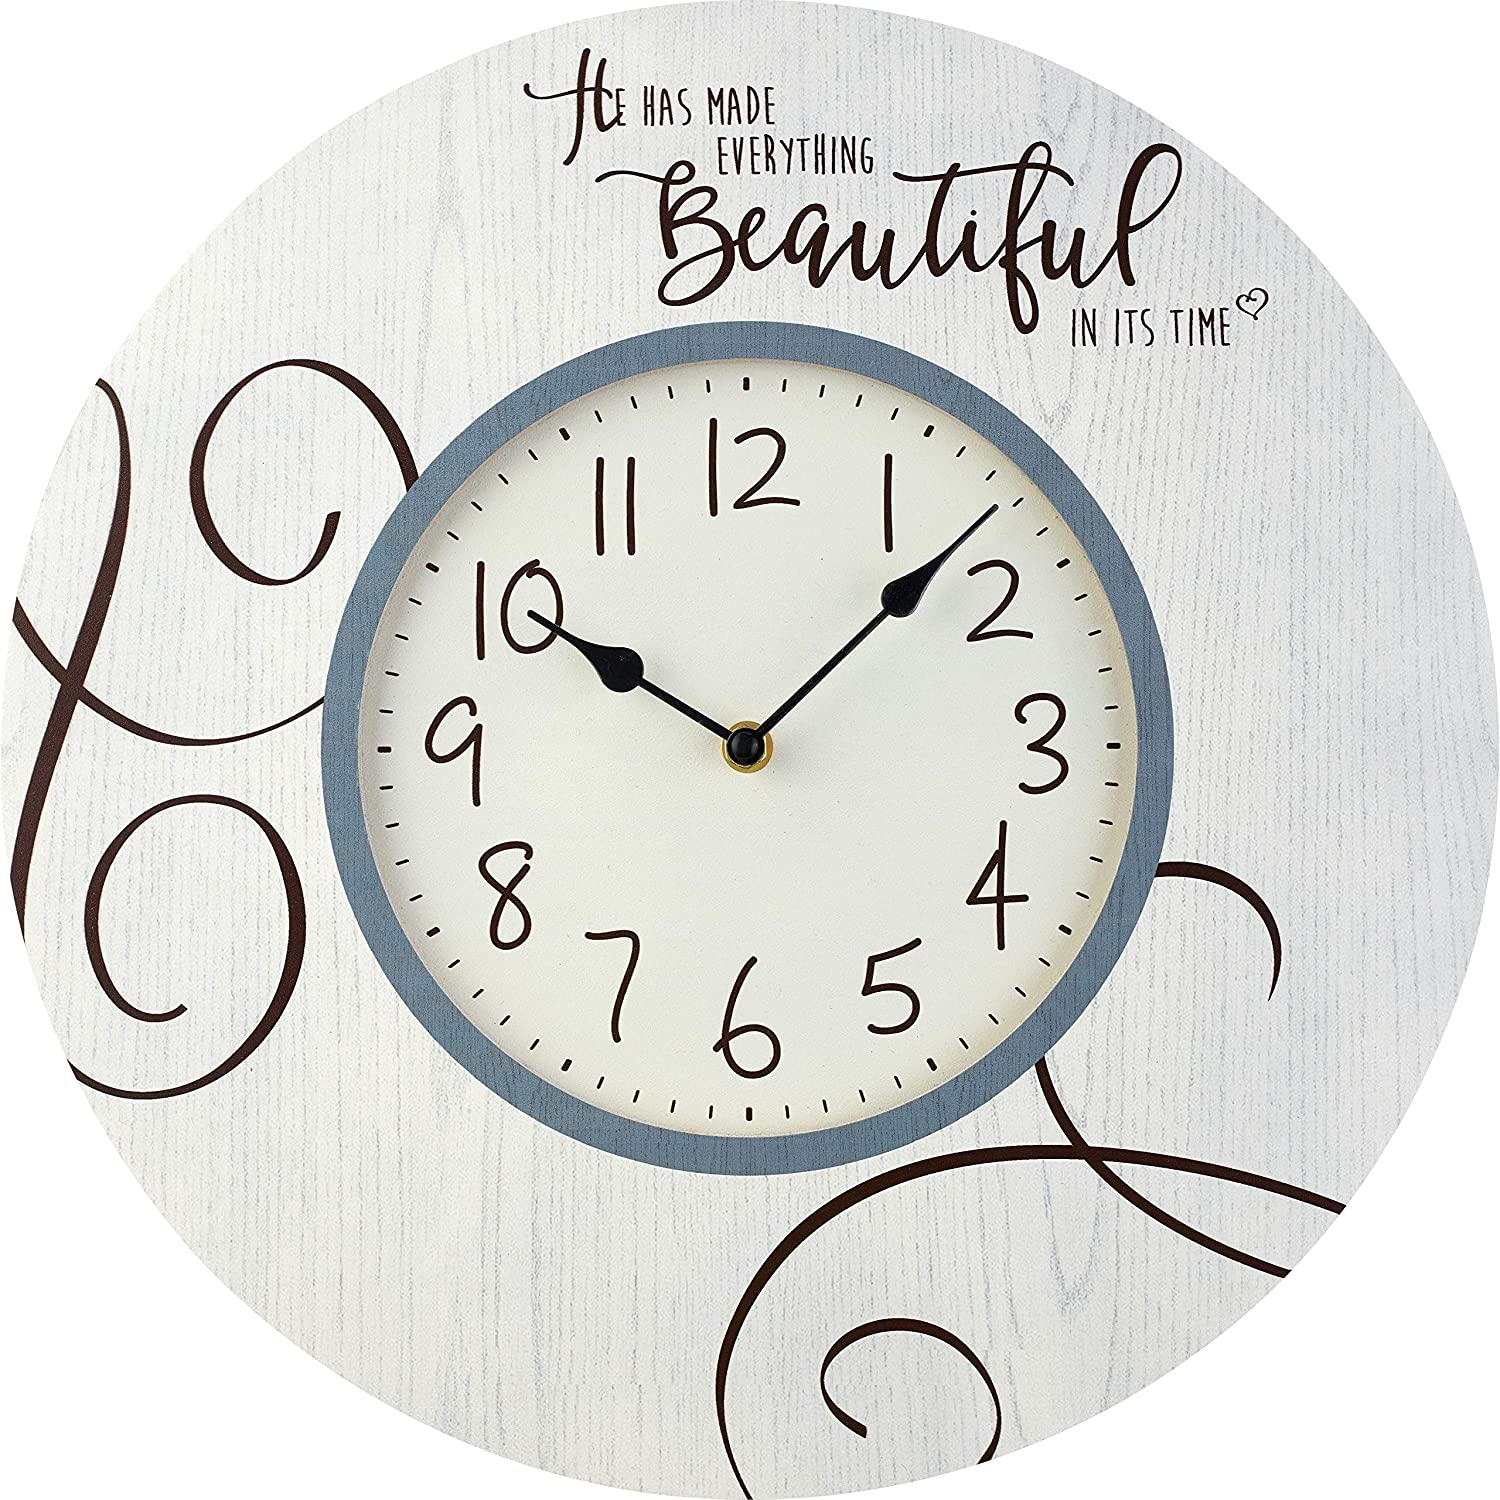 Precious Moments Farmhouse Decor He Has Made Everything Beautiful In Its Time Wood/Metal Wall Clock 189916